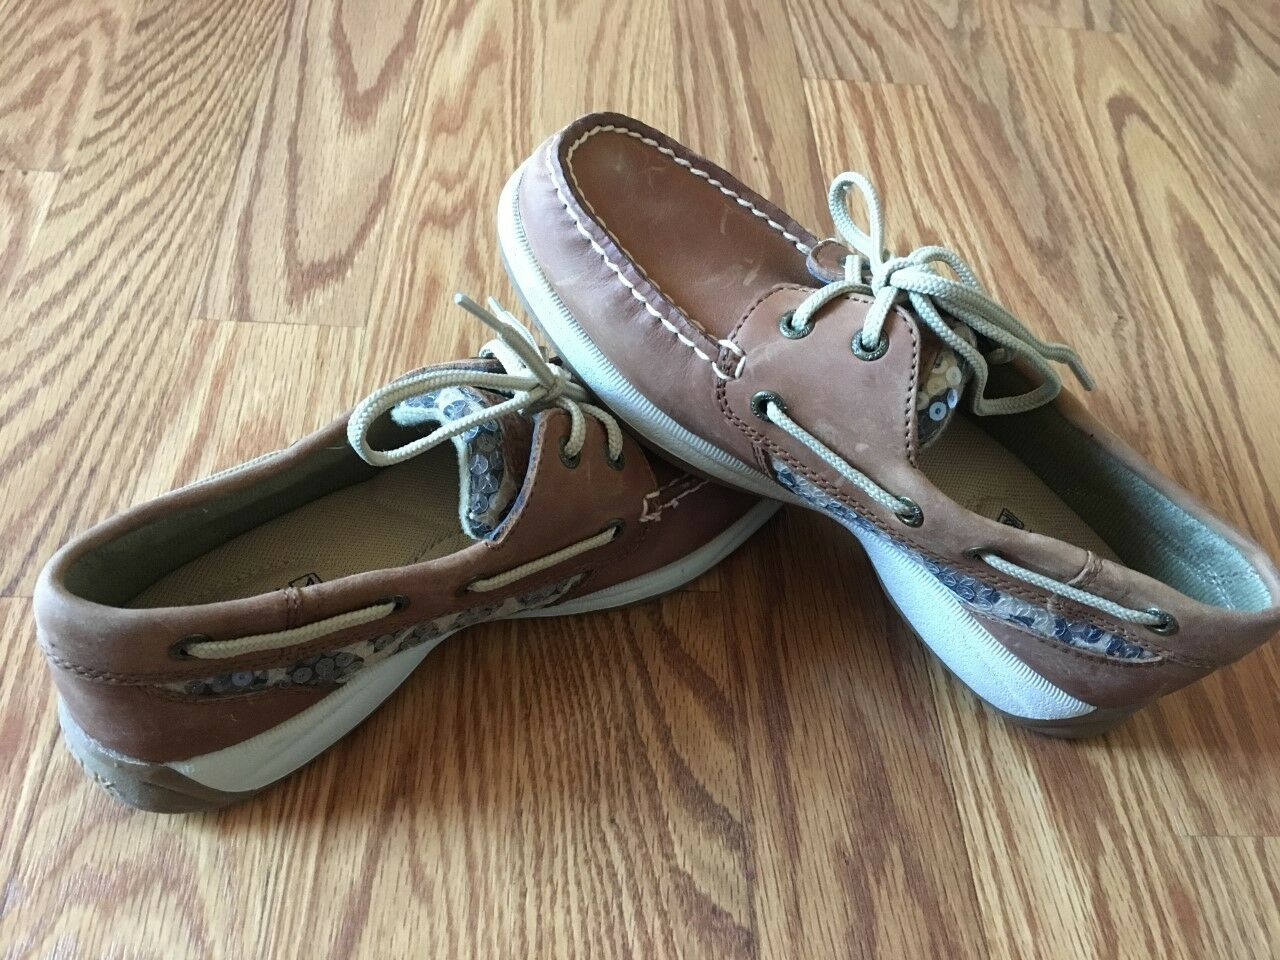 Women's Sperry Top-Sider BLUEFISH PLAID Boatshoe Moccasin Loafer Tan/ Navy sz 5